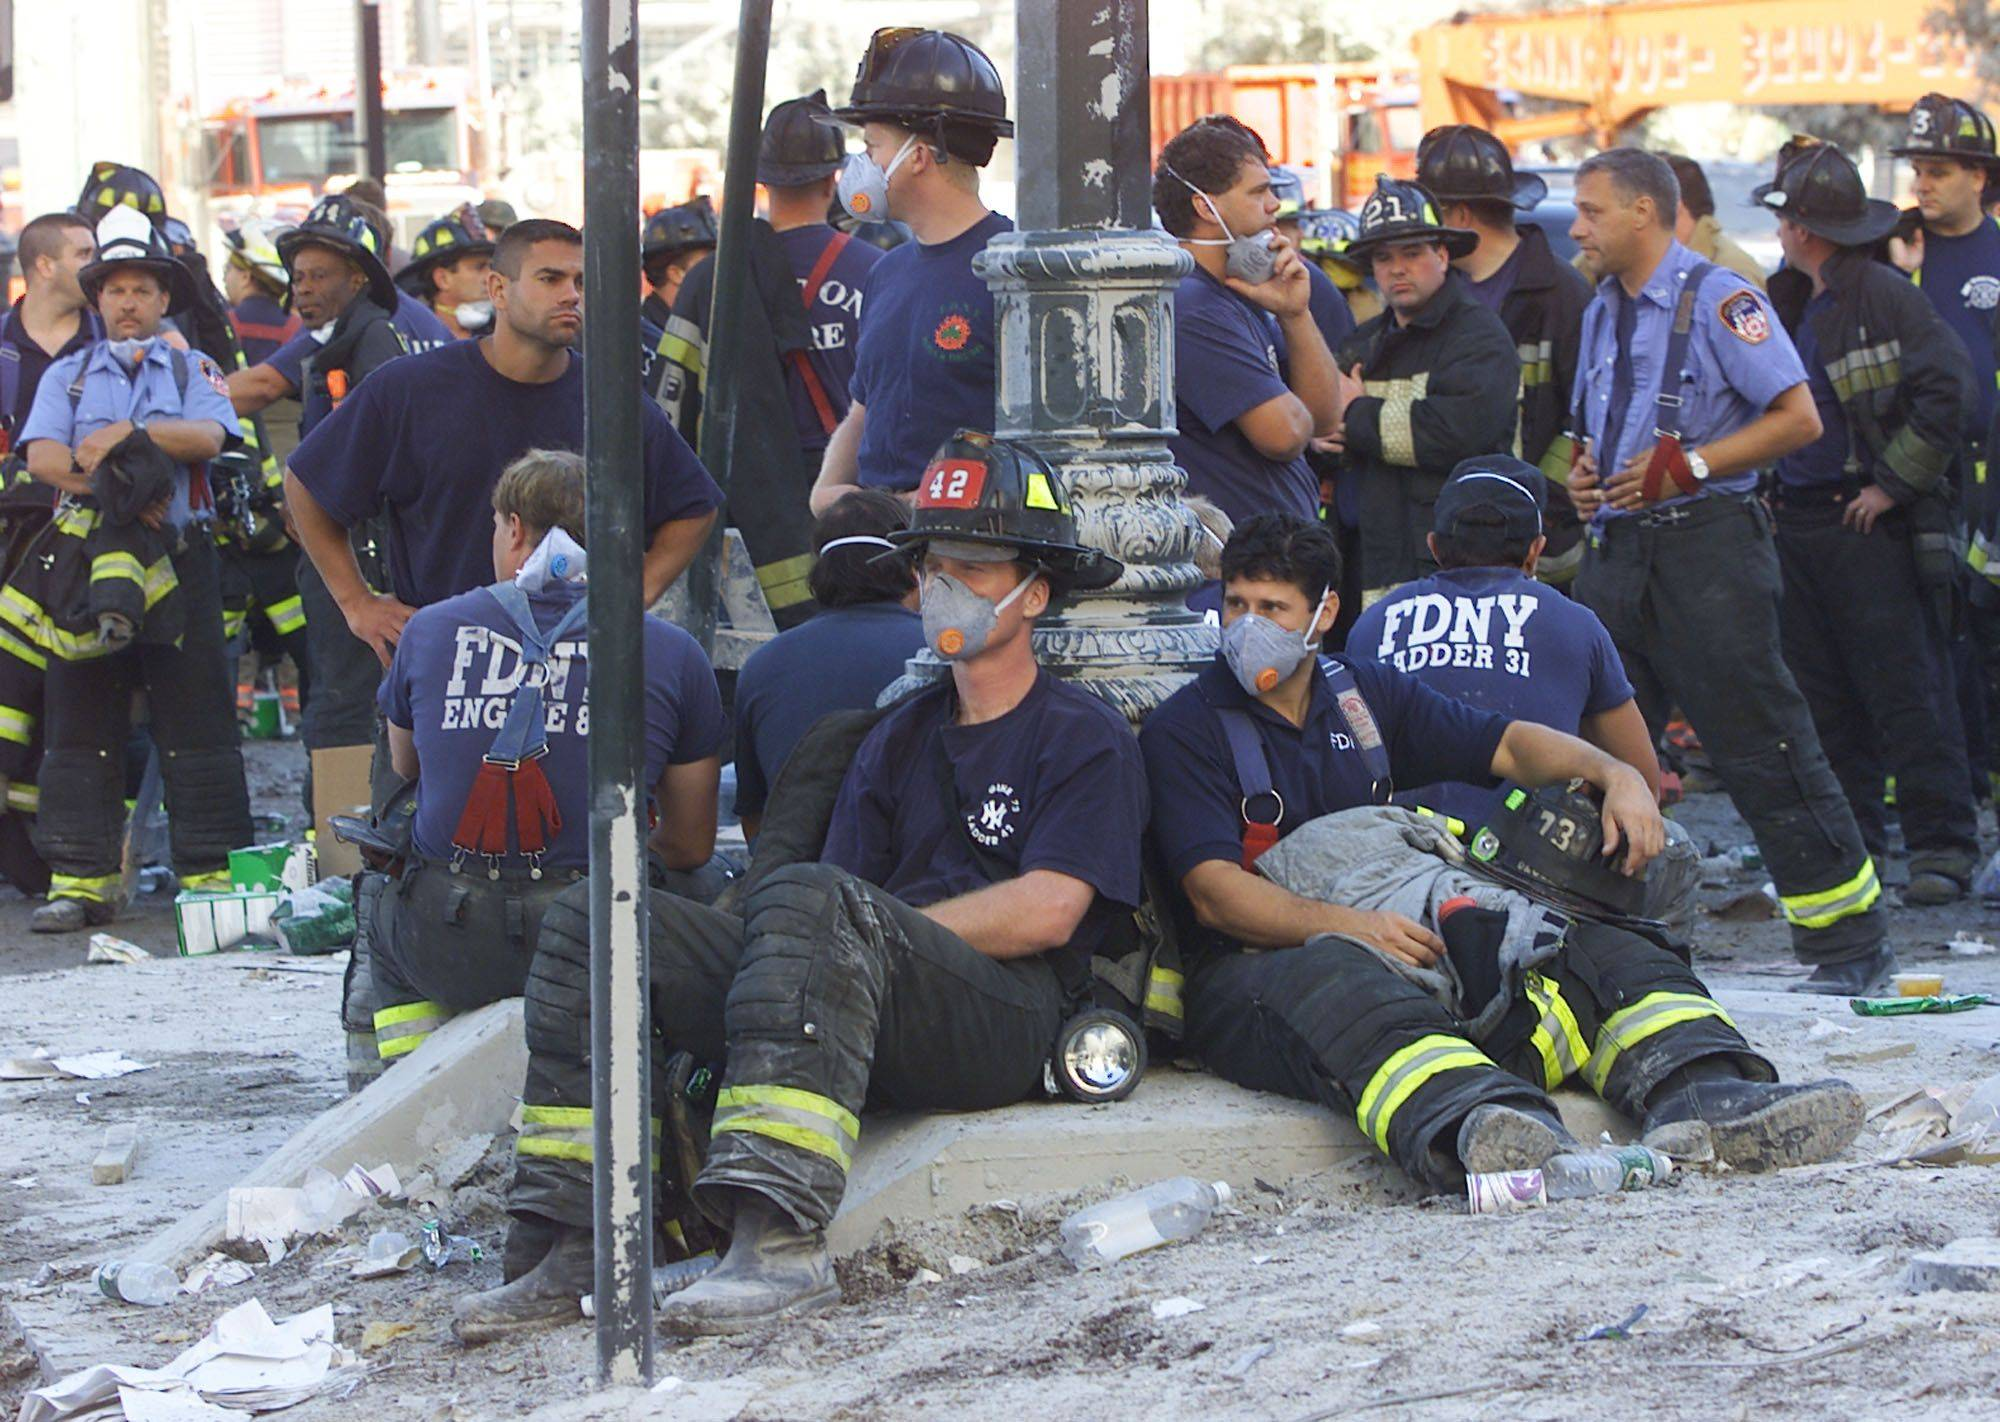 Firefighters rest as rescue efforts continue at the World Trade Center in New York on Sept. 12, 2001.